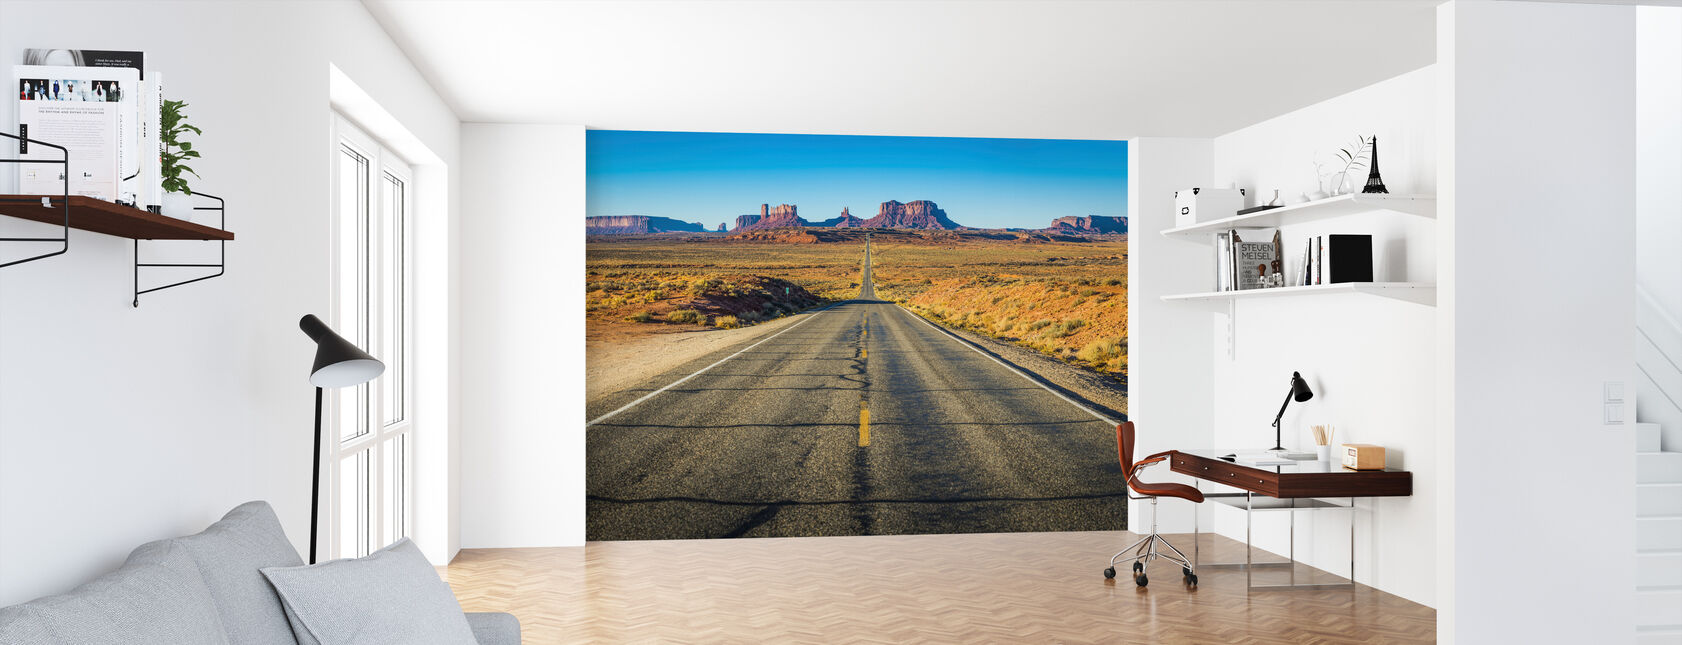 Monument Valley Road - Wallpaper - Office